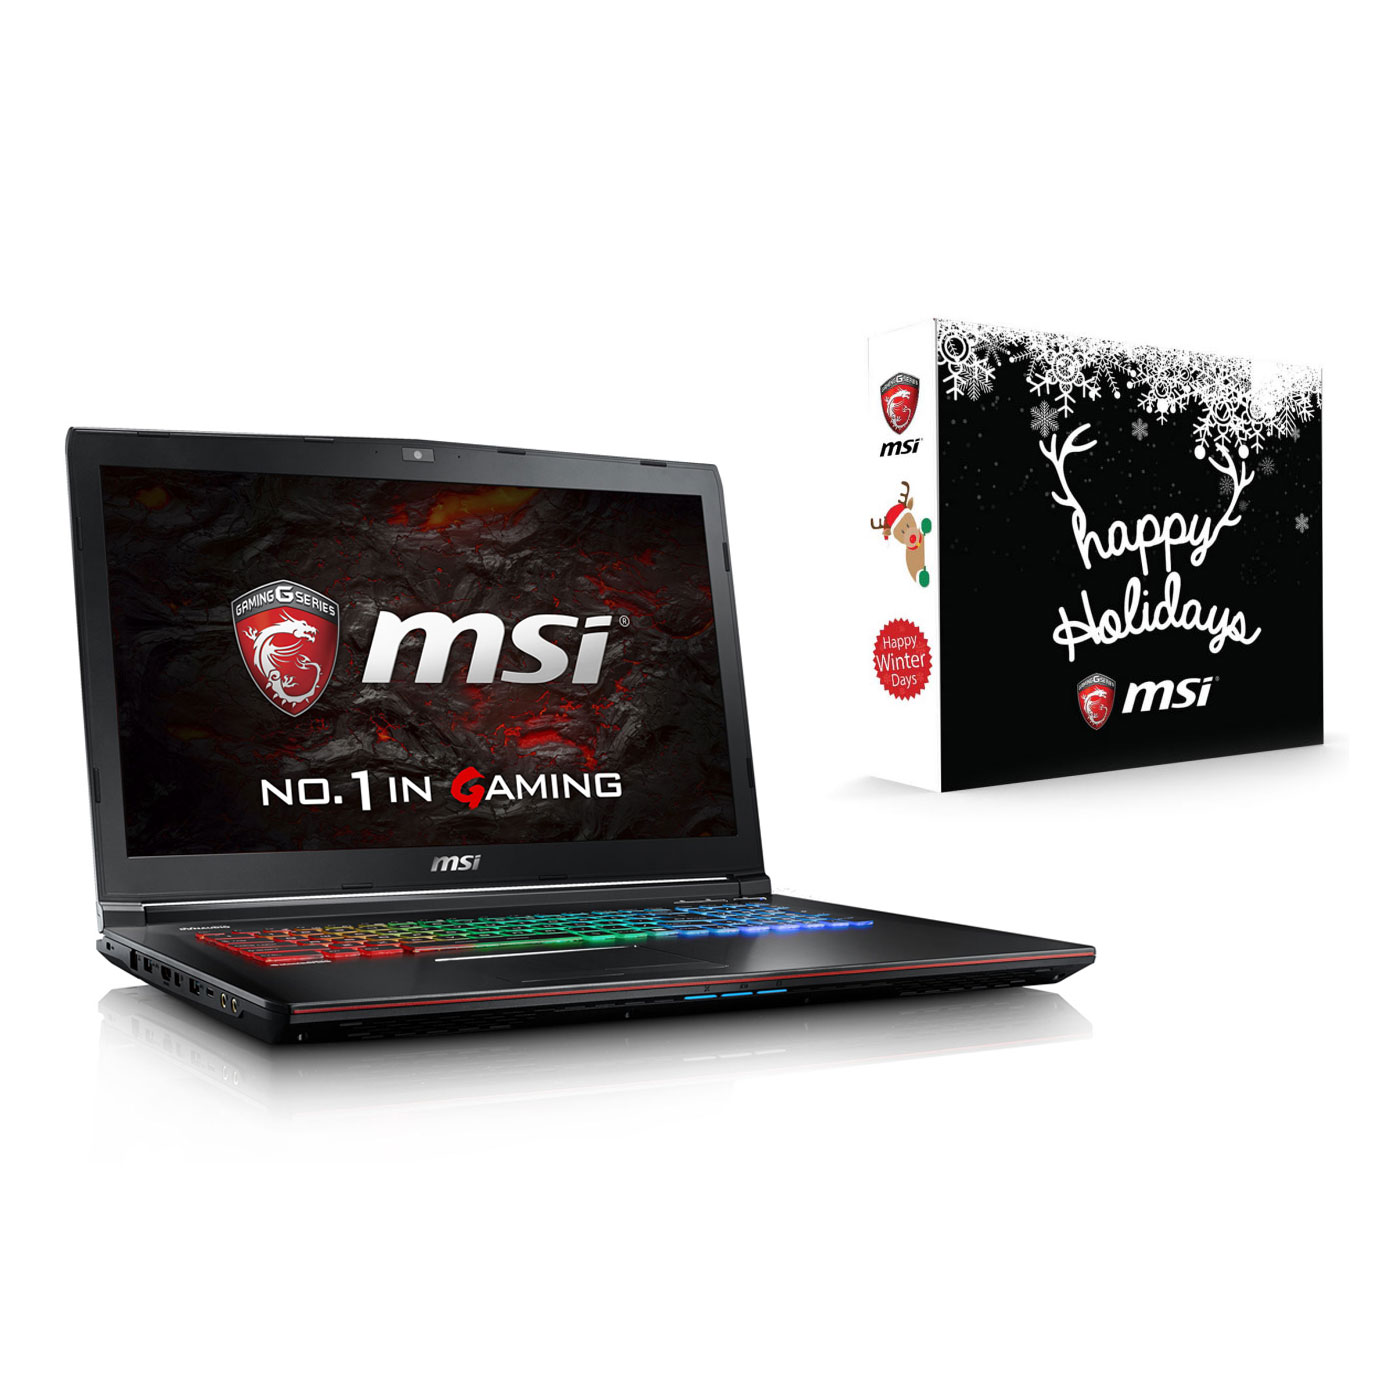 "PC portable MSI GE72VR 6RF-238XFR Apache Pro + X'mas Pack MSI for GE OFFERT ! Intel Core i5-6300HQ 8 Go SSD 128 Go + HDD 1 To 17.3"" LED Full HD 120 Hz NVIDIA GeForce GTX 1060 Graveur DVD Wi-Fi AC/Bluetooth Webcam FreeDOS (garantie constructeur 2 ans)"